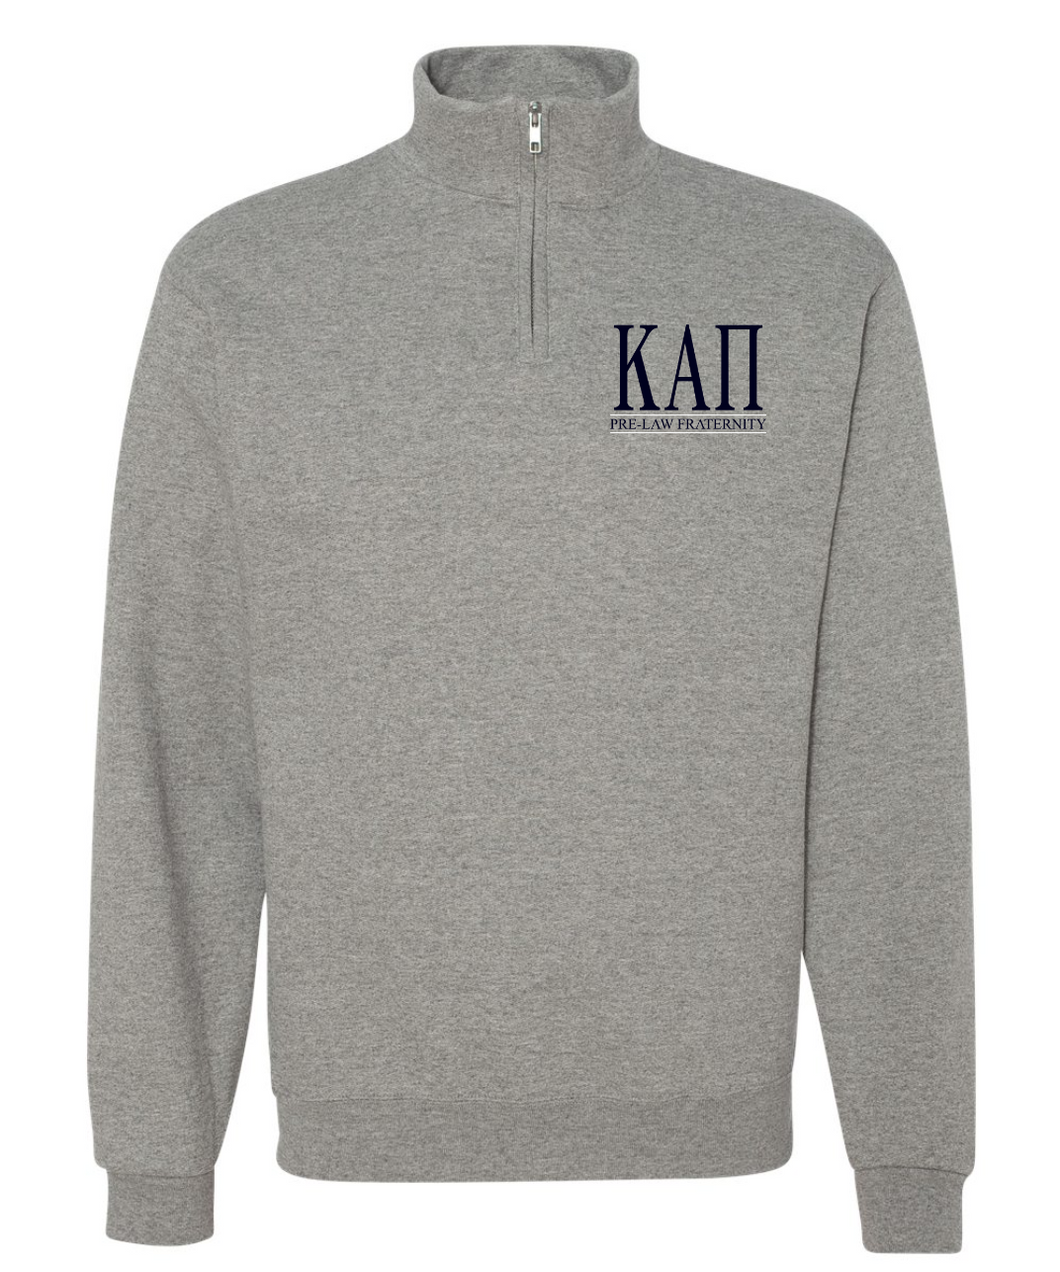 KAP Pre-Law Fraternity JERZEES 1/4 Zip